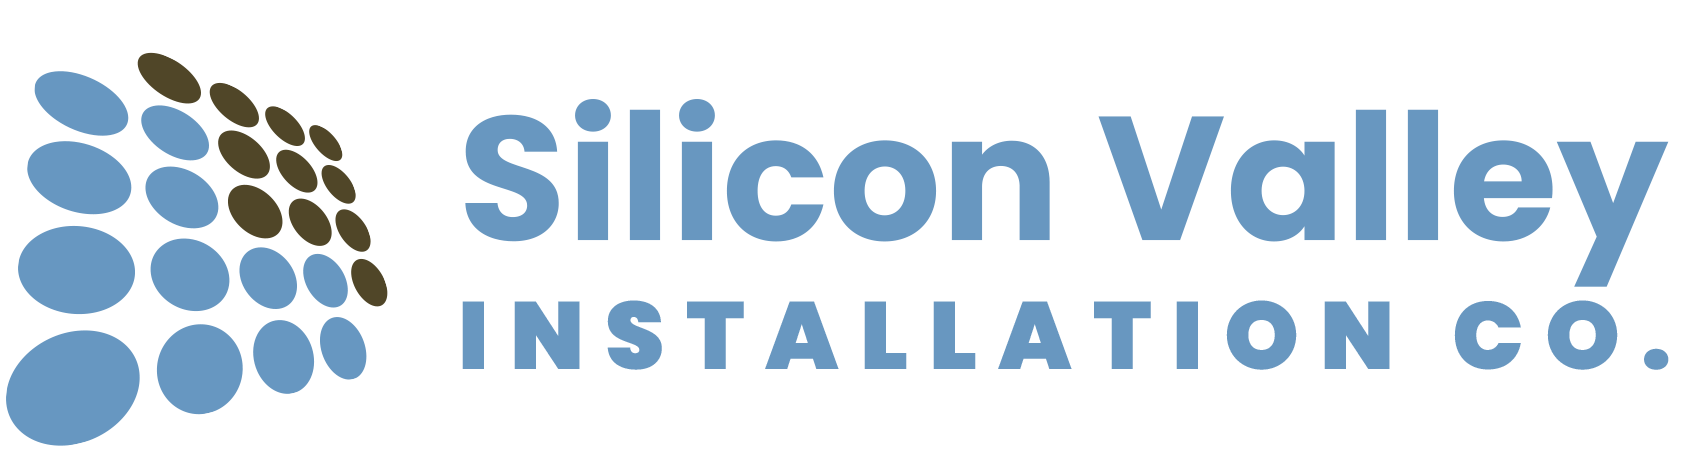 Silicon Valley Installation Company, Inc.